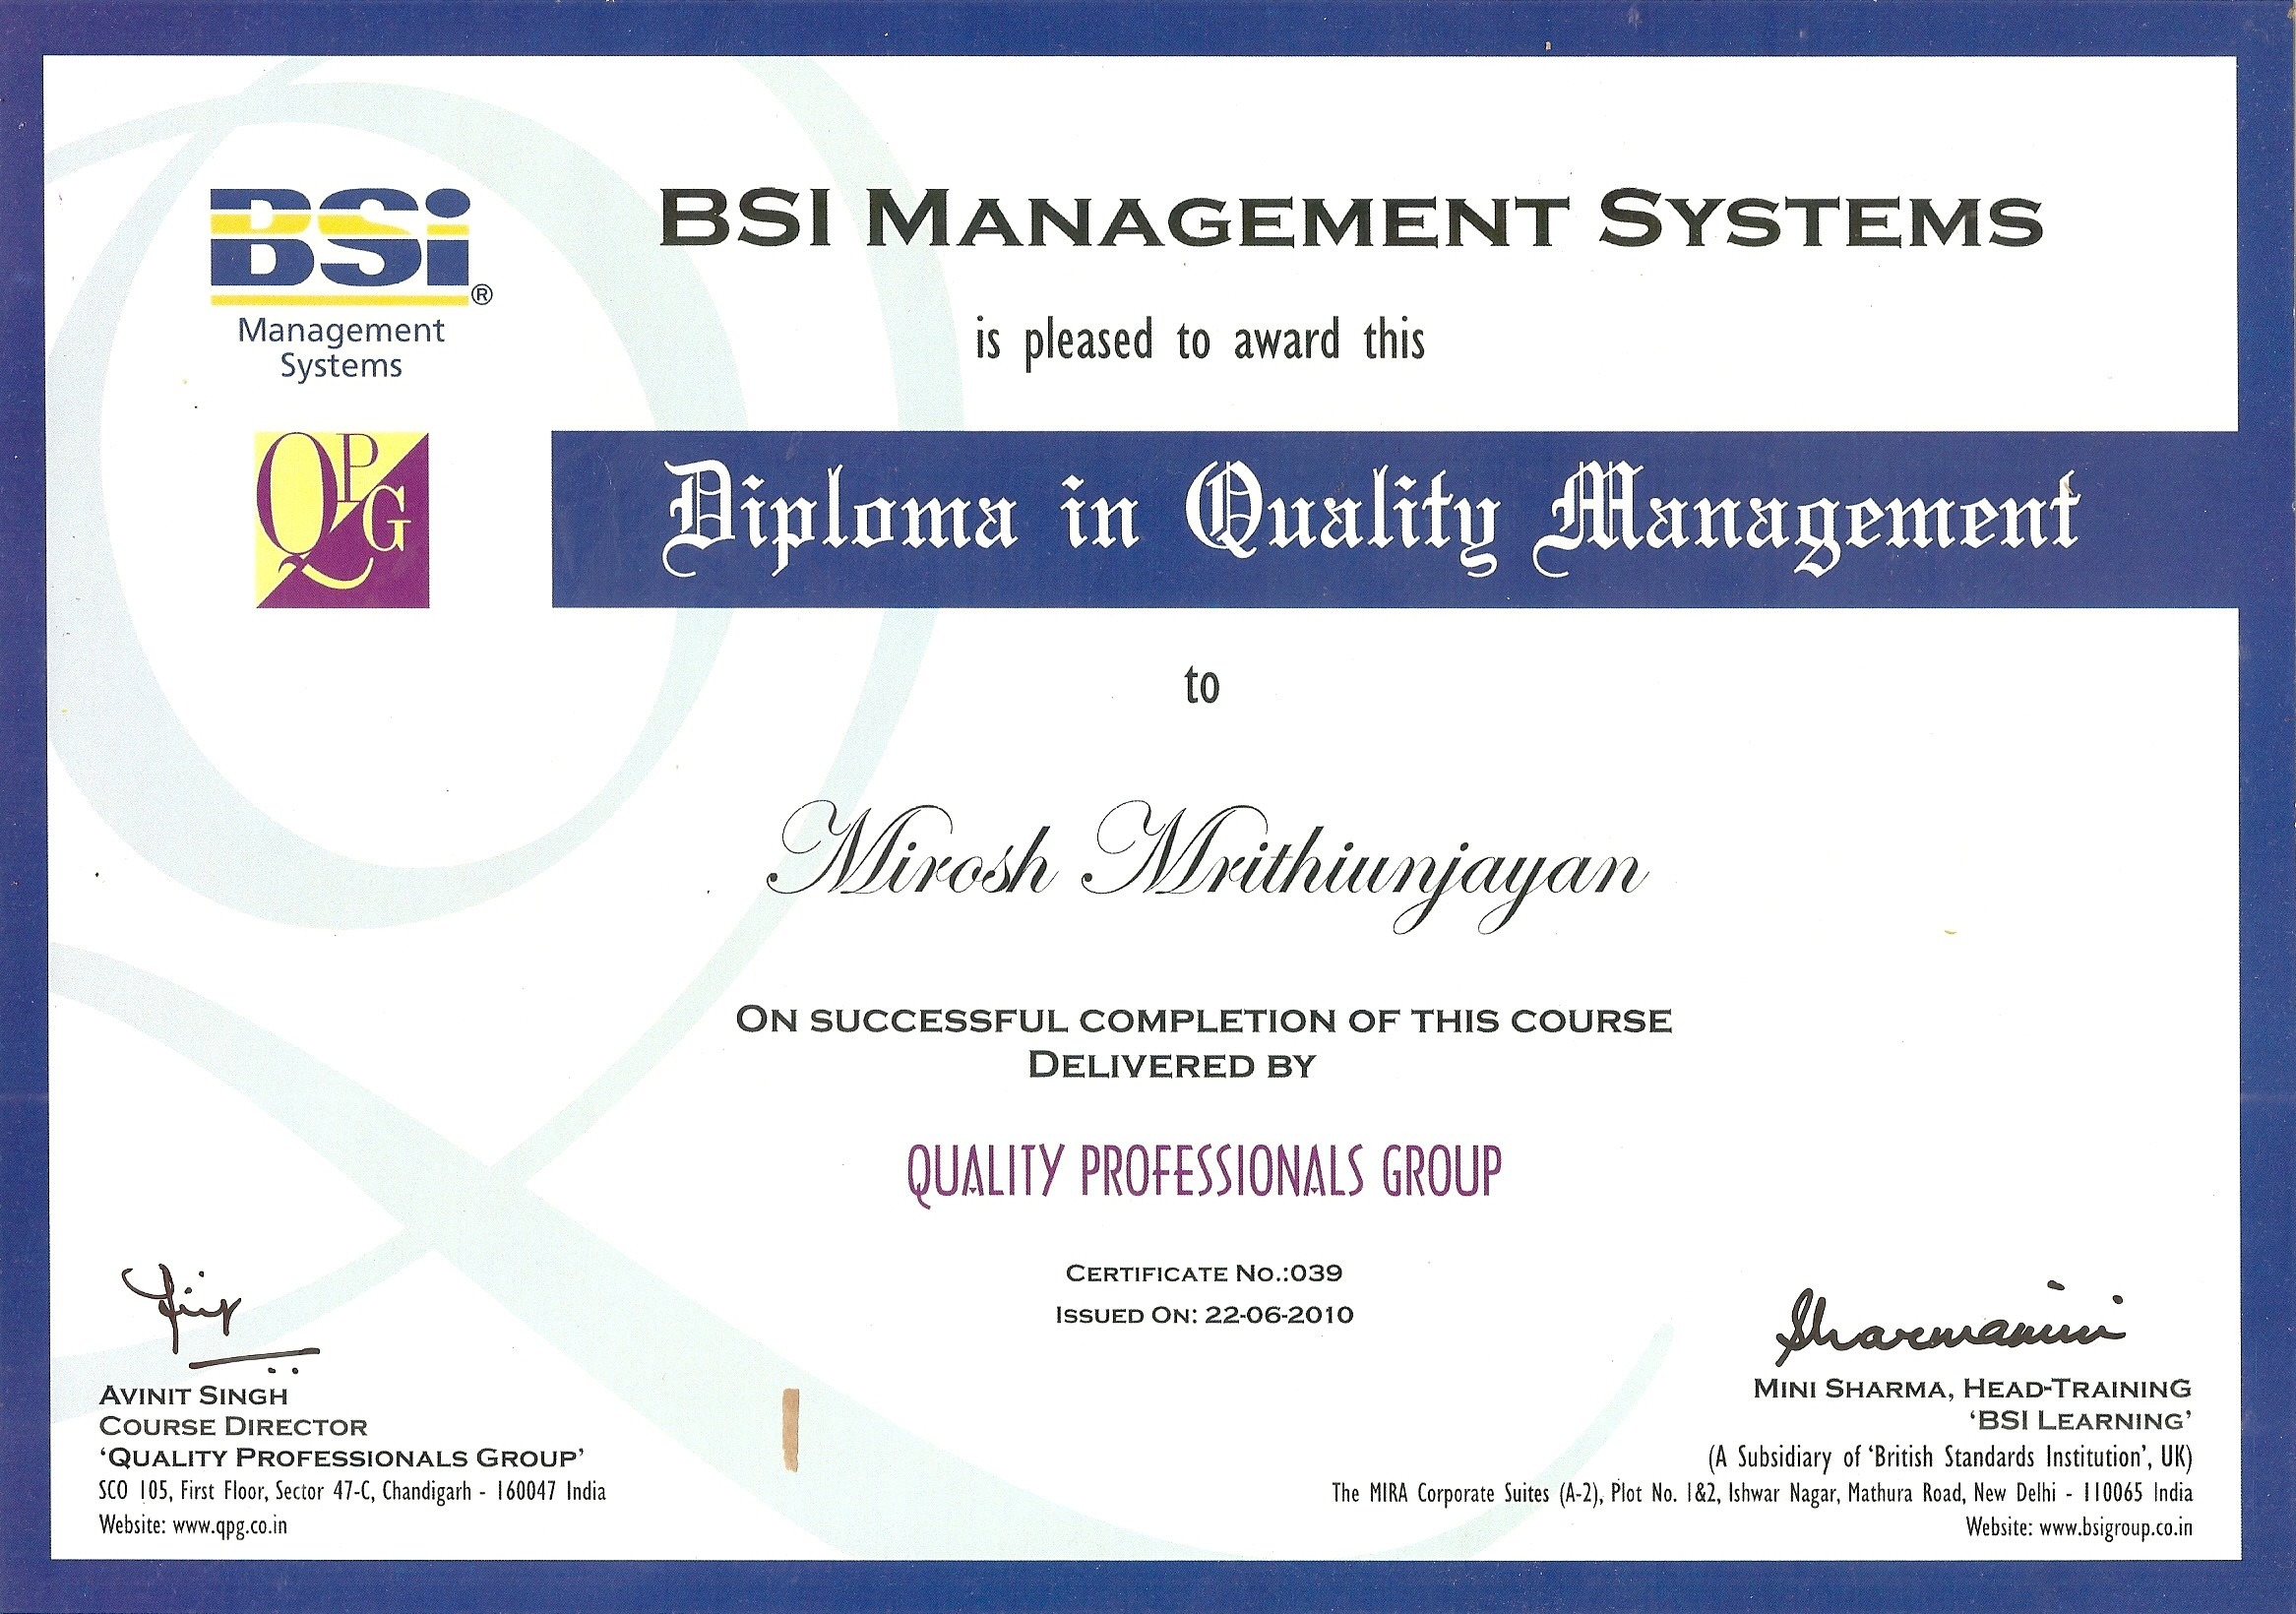 mirosh mrithiunjayan bayt com diploma in quality management certificate